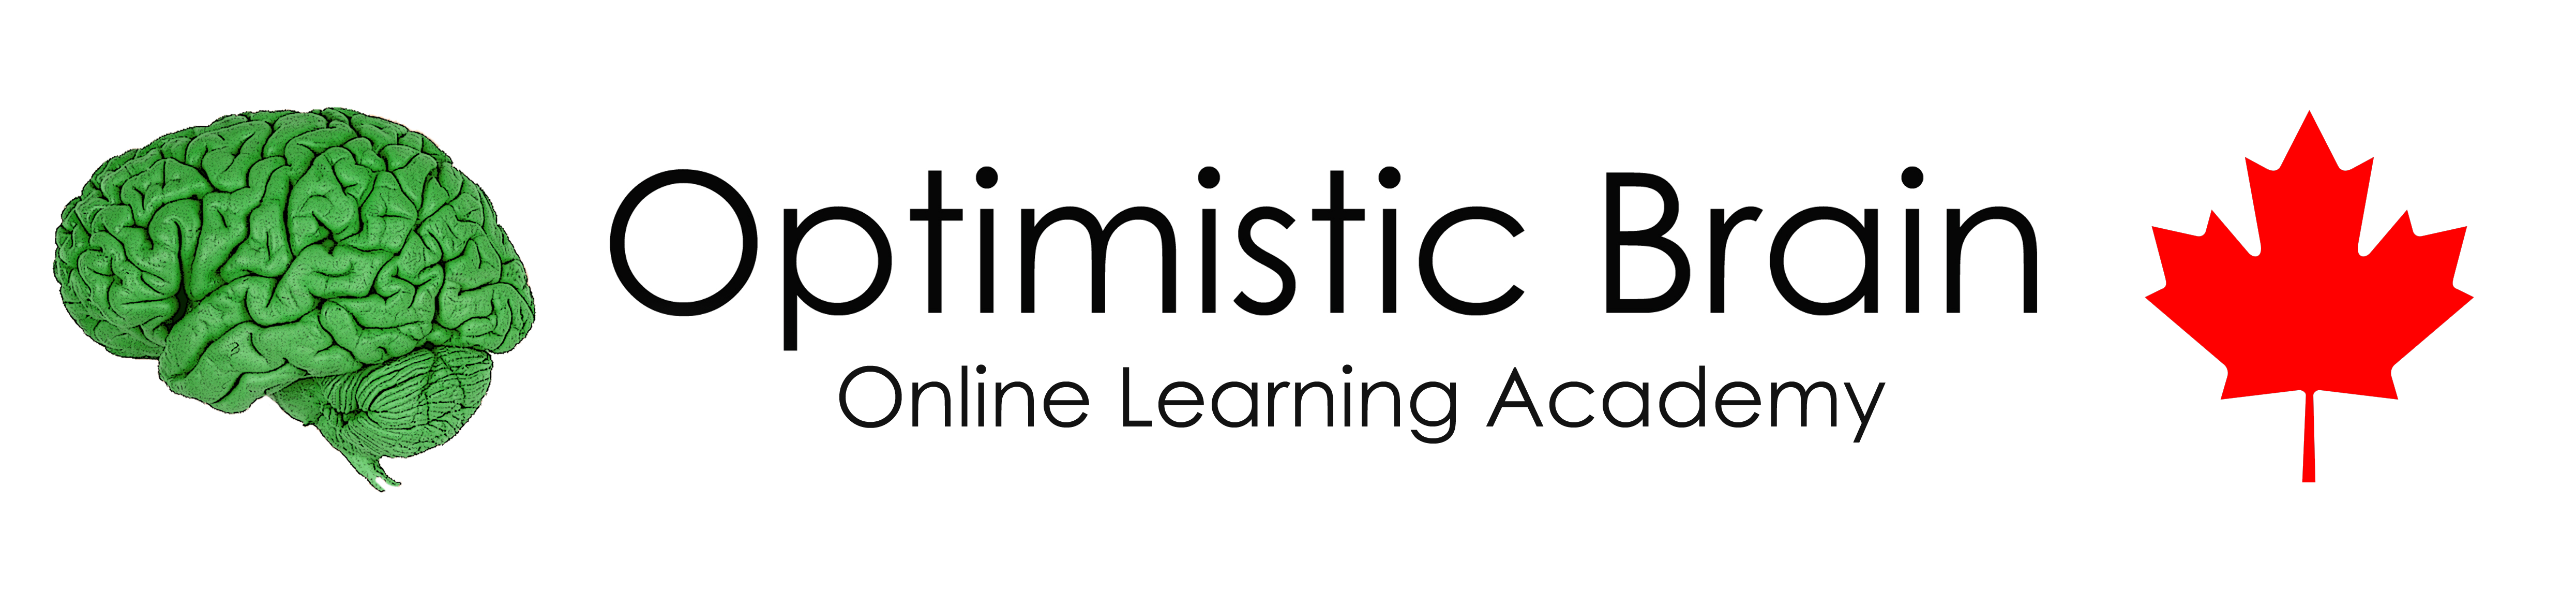 Optimistic Brain Academy